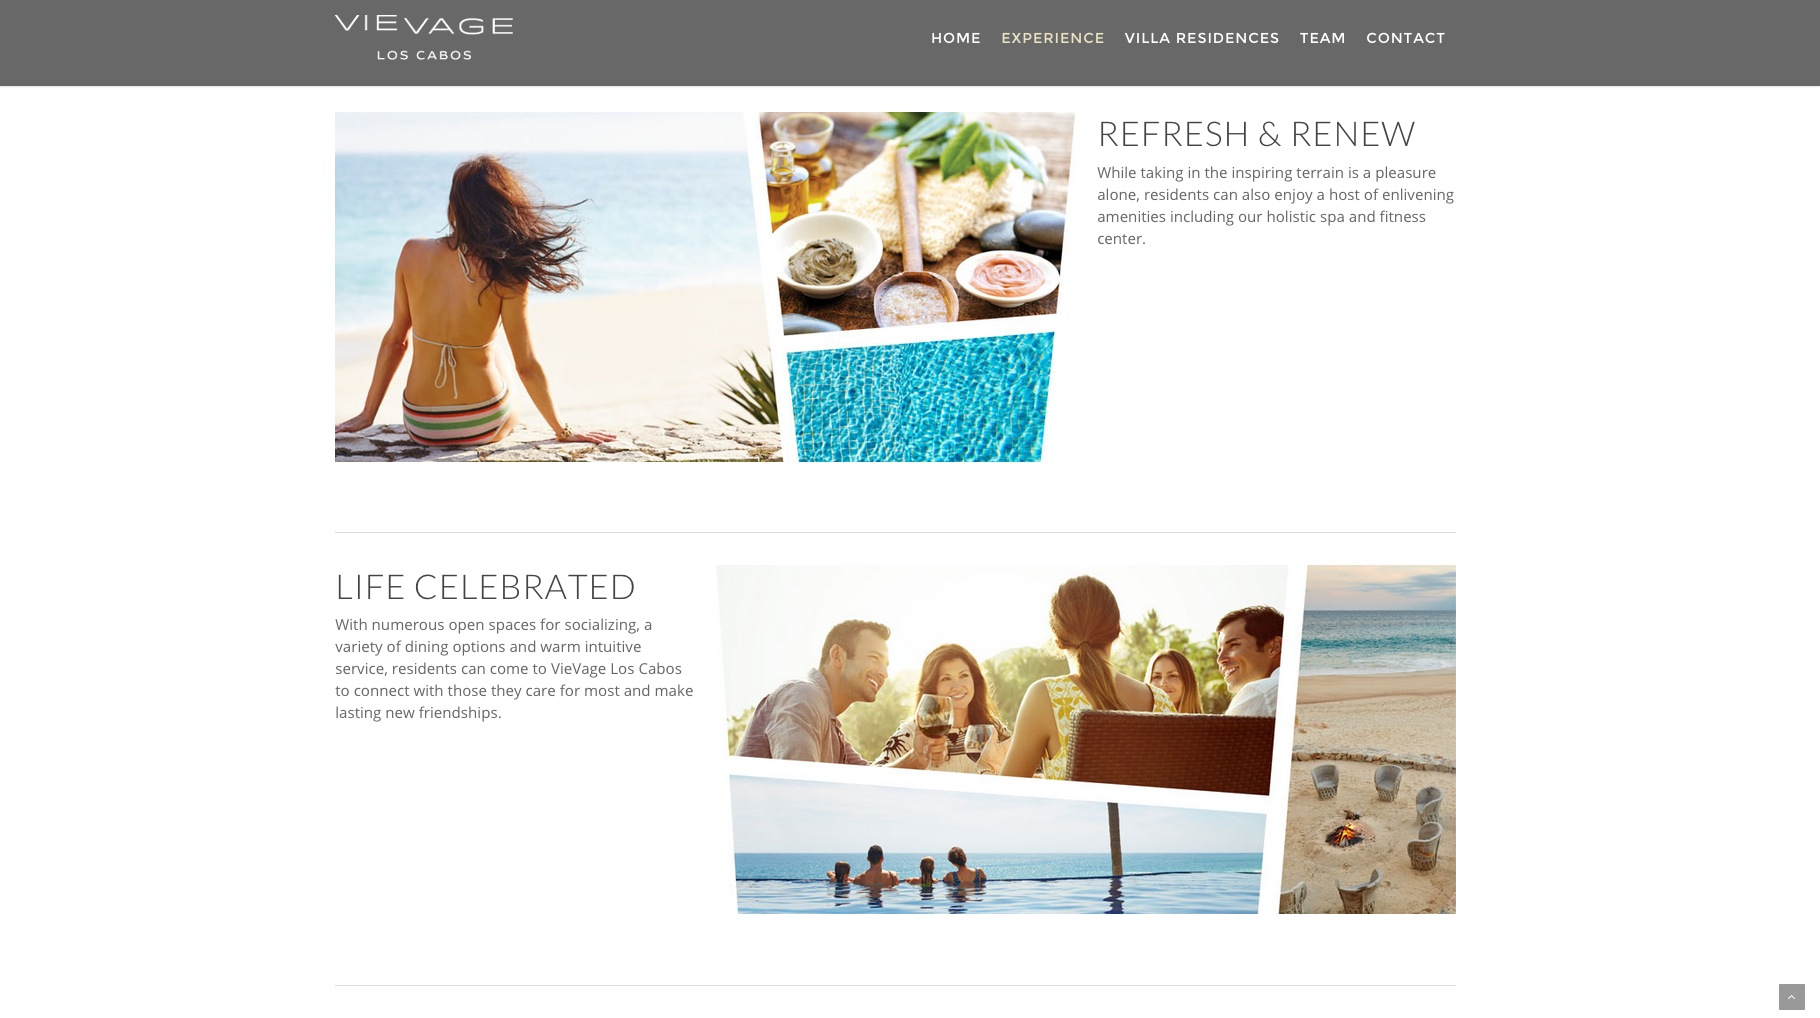 VieVage Los Cabos Ad  | Trinette+Chris Photographers